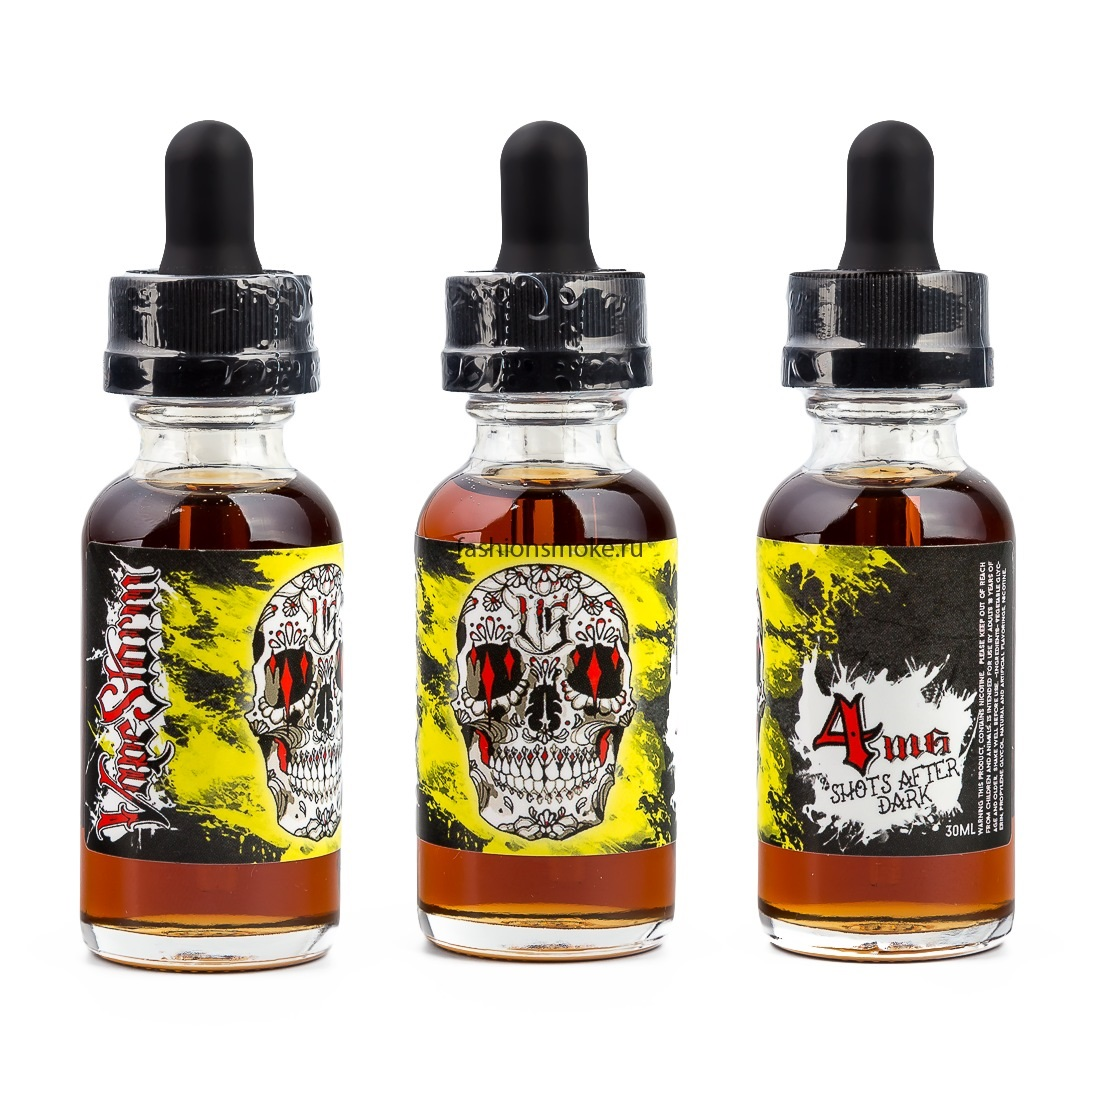 Жидкость Vape Storm - SHOTS AFTER DARK (30 мл)